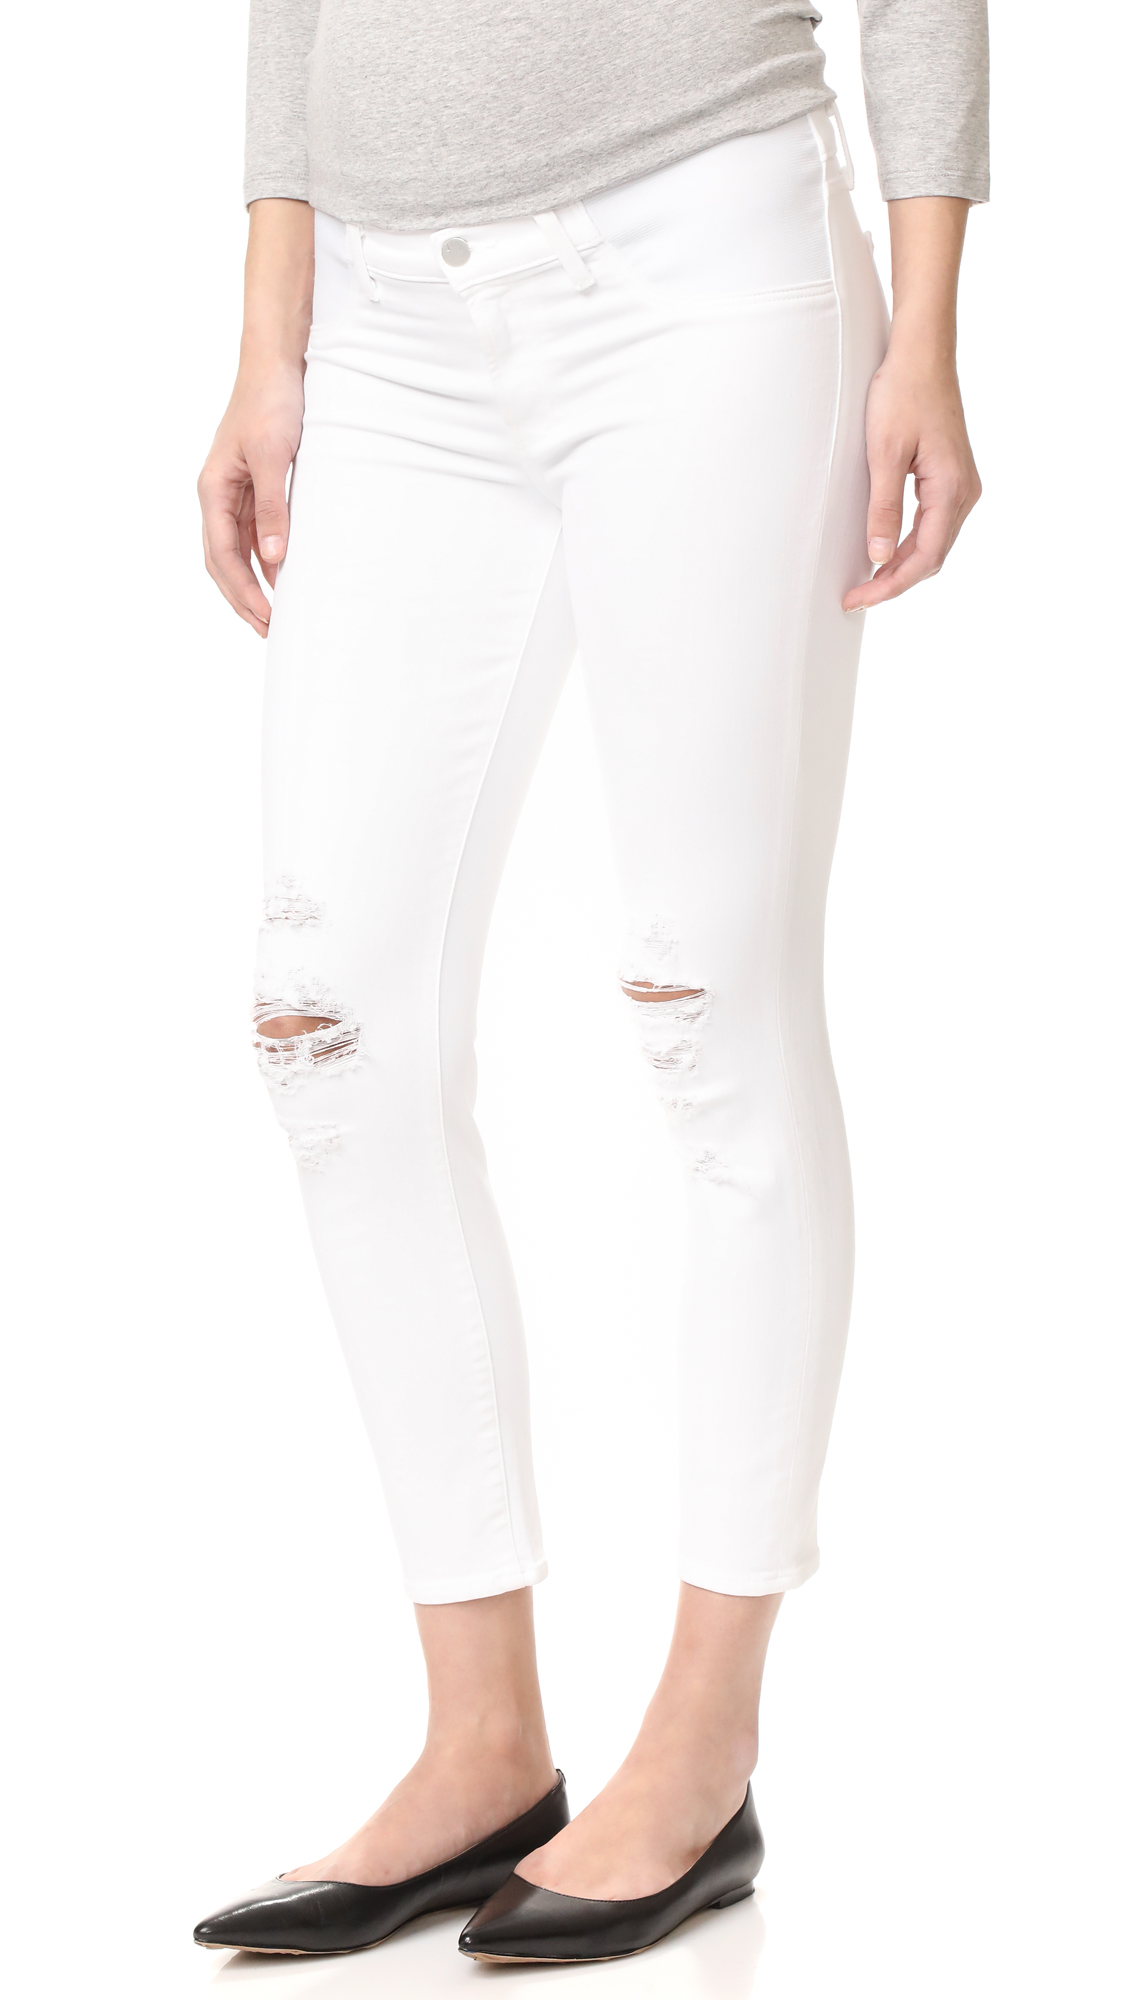 575330f1b7ec6 Where to buy the best maternity jeans UK 2018 - MadeForMums